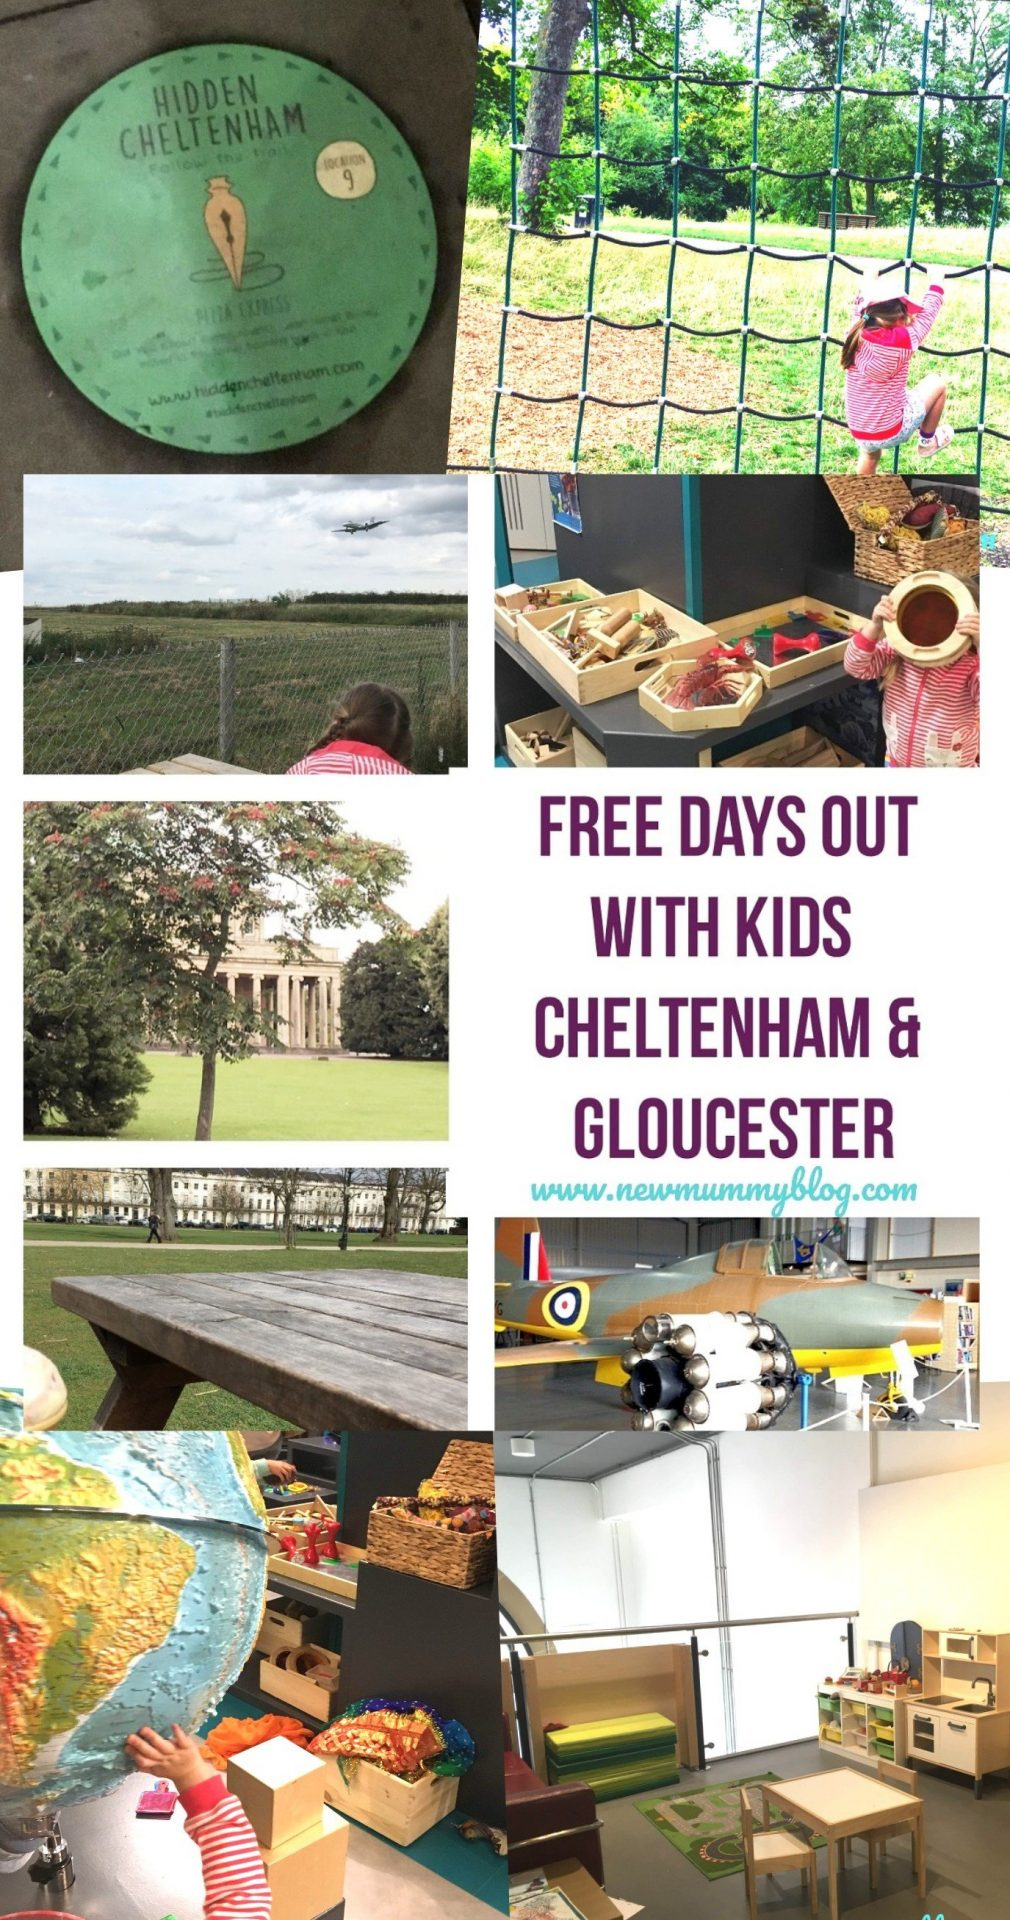 Free days out around Cheltenham & Gloucester, Gloucestershire. Surviving tips for school holidays on a budget - summer 2019